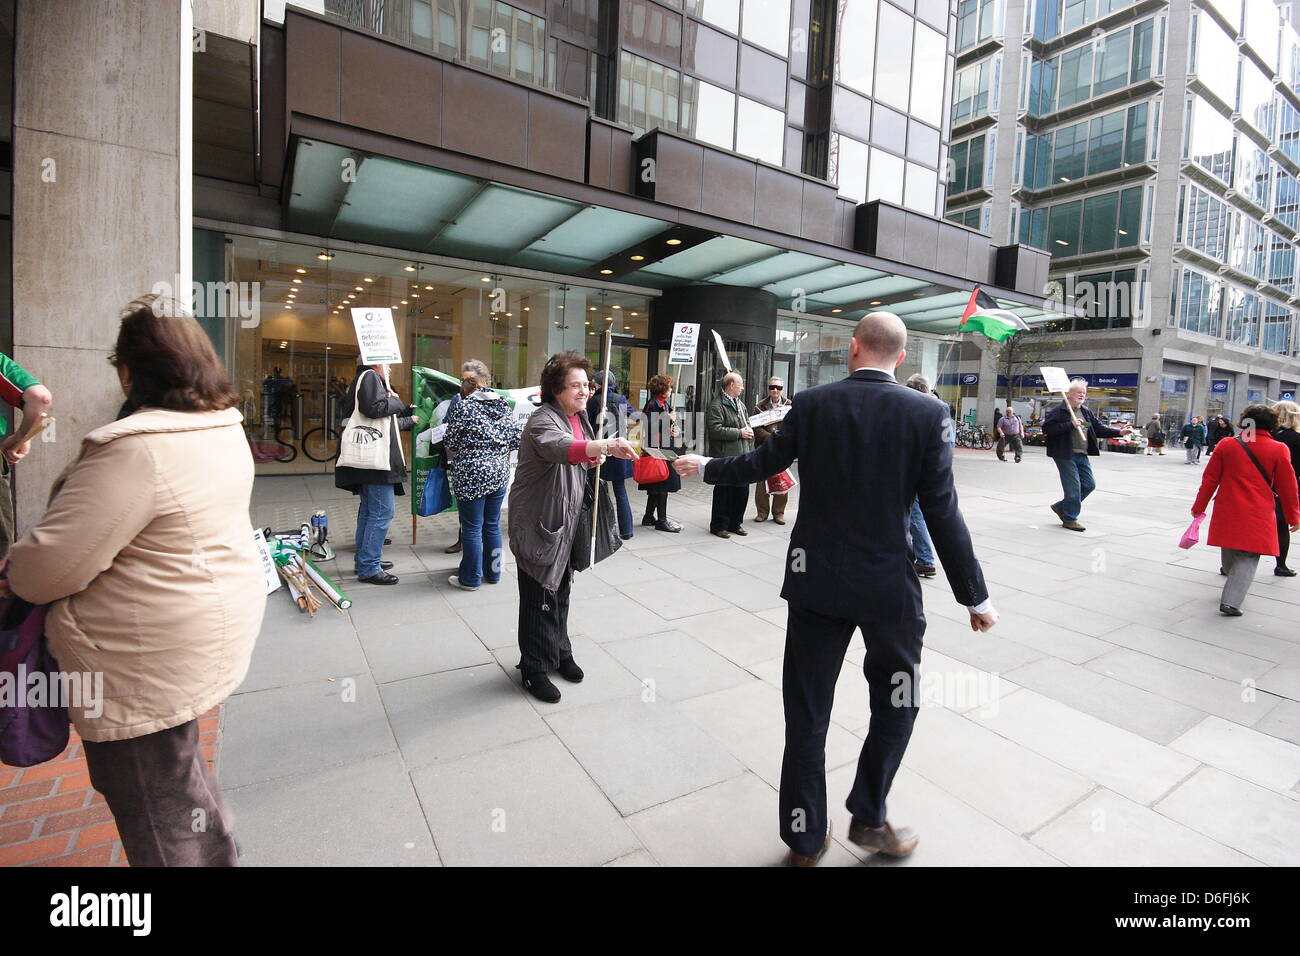 Wednesday 17th April, Palestine Solidarity Campaign protest outside G4S offices in Victoria Street London. Around - Stock Image